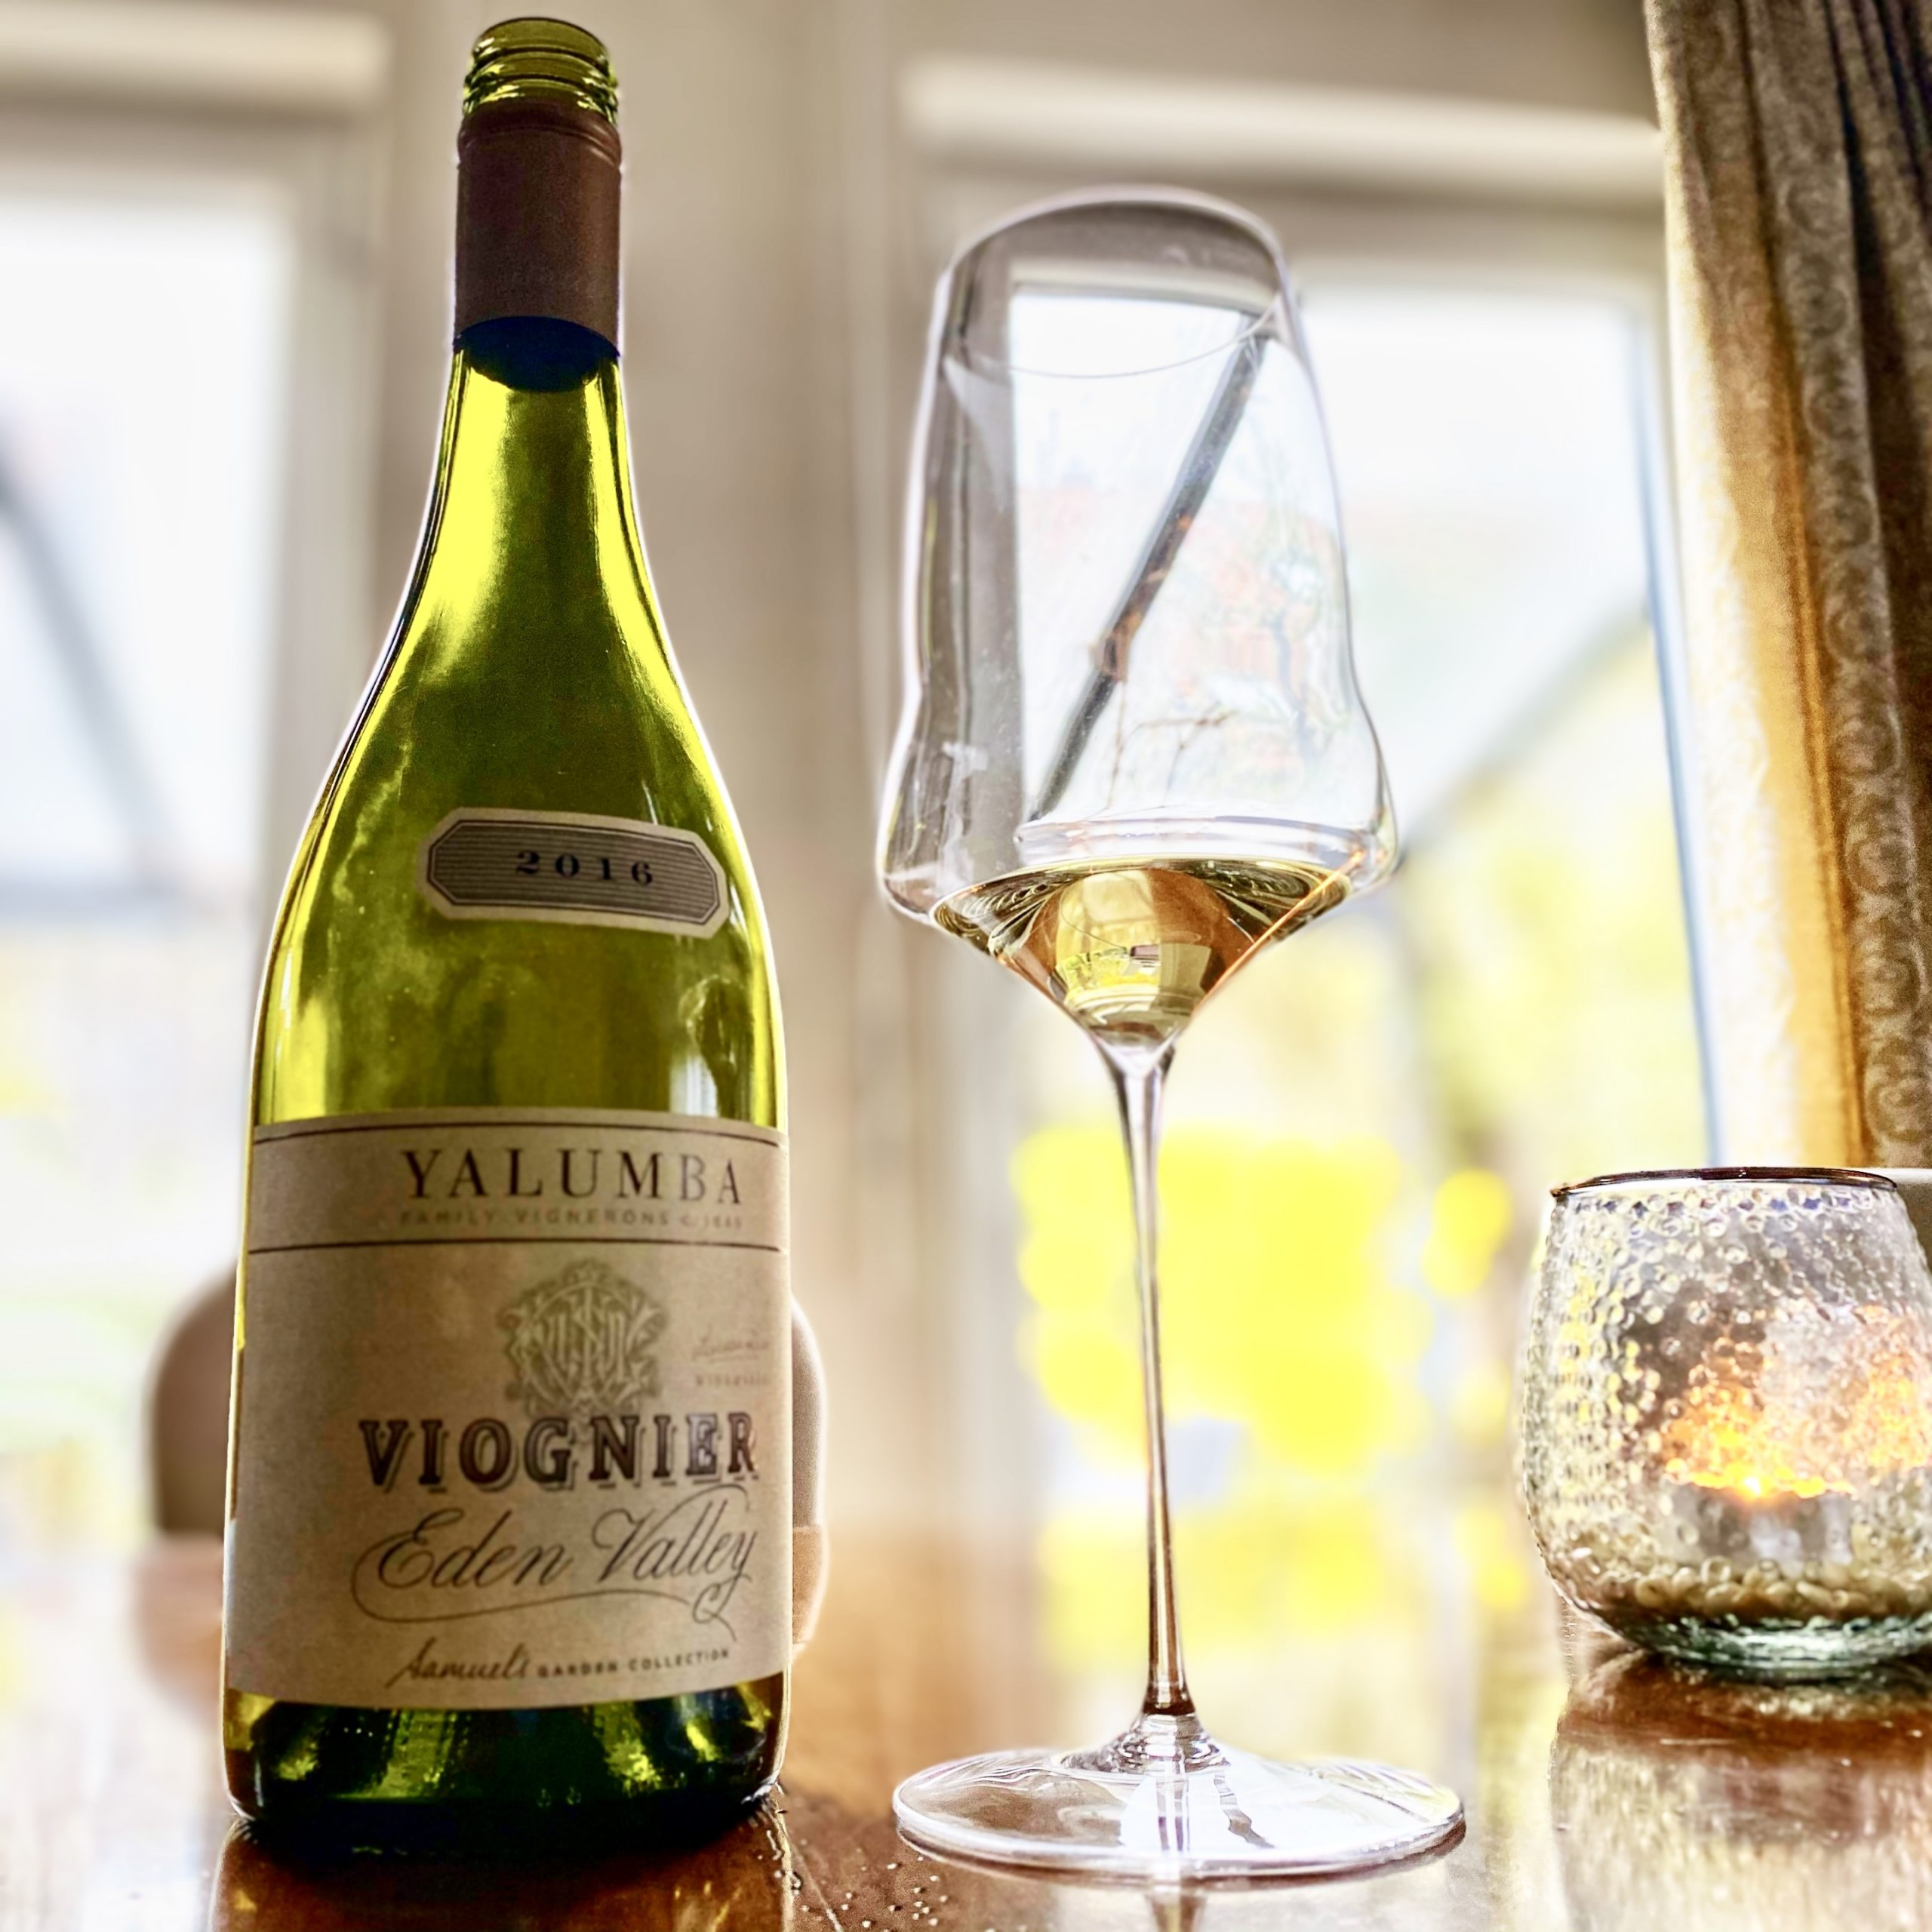 You are currently viewing Yalumba Viognier 2016